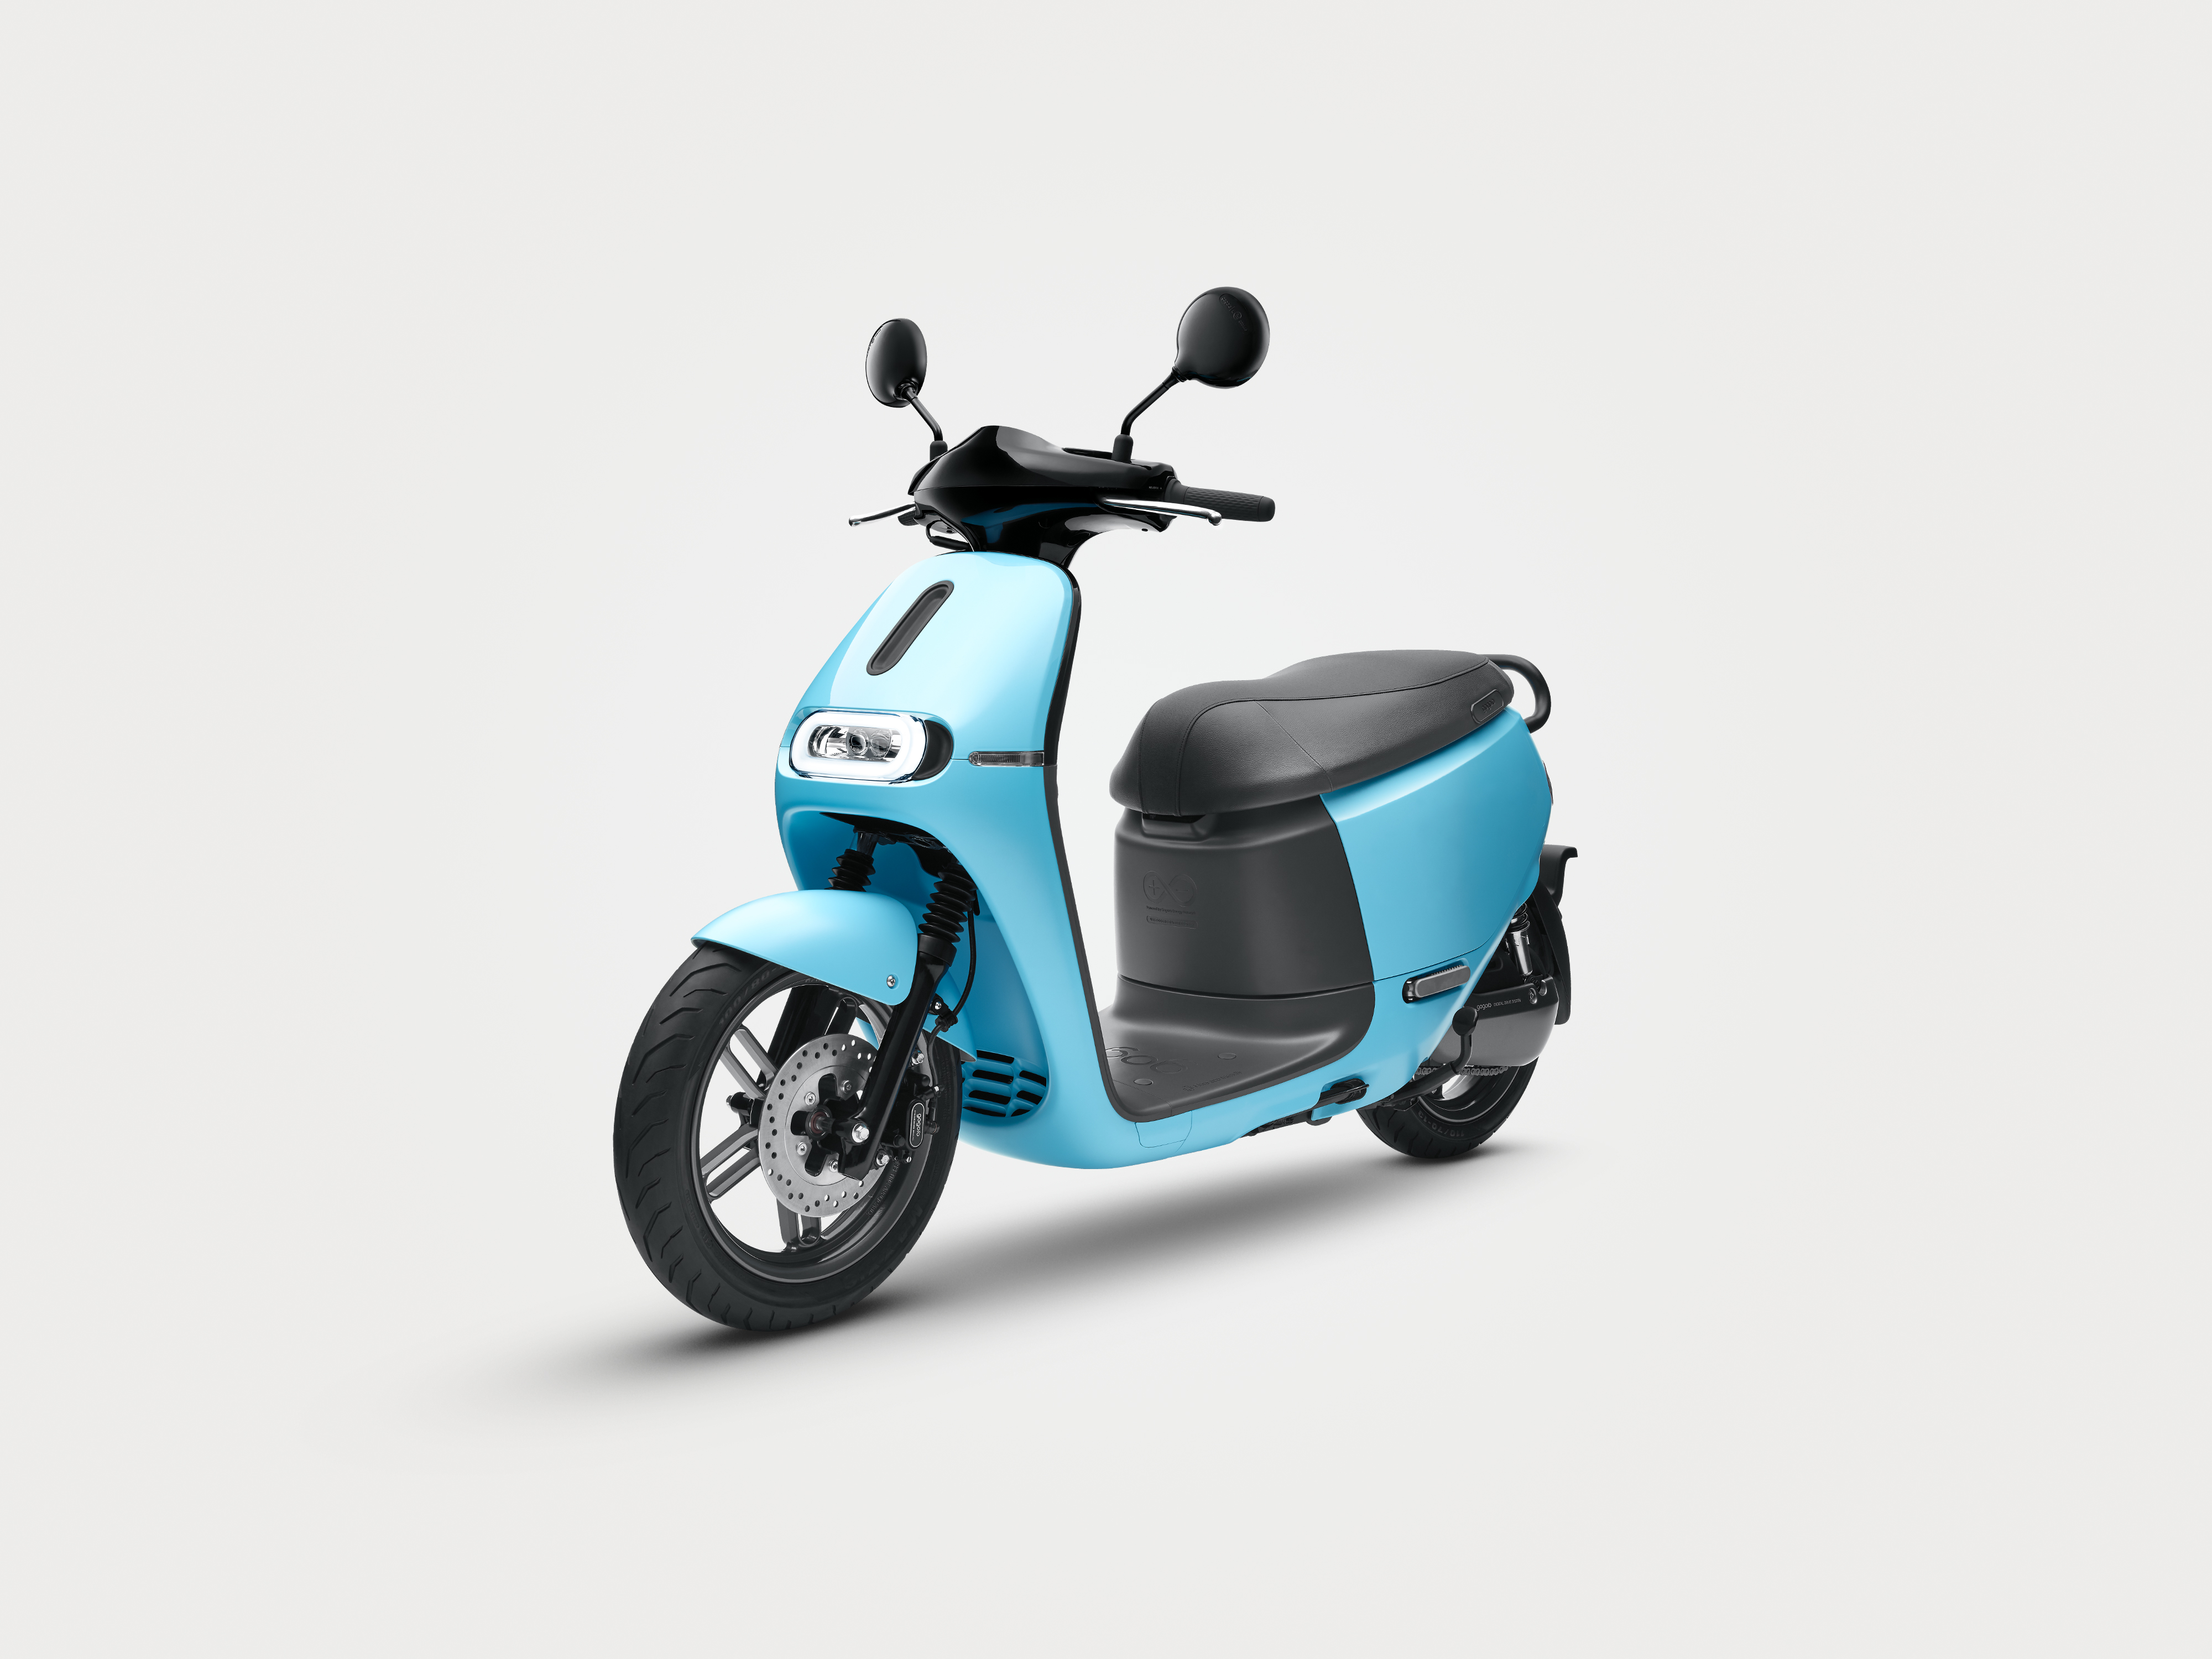 gogoro s colorful new electric scooter is twice as cheap but just as fast as before the verge. Black Bedroom Furniture Sets. Home Design Ideas